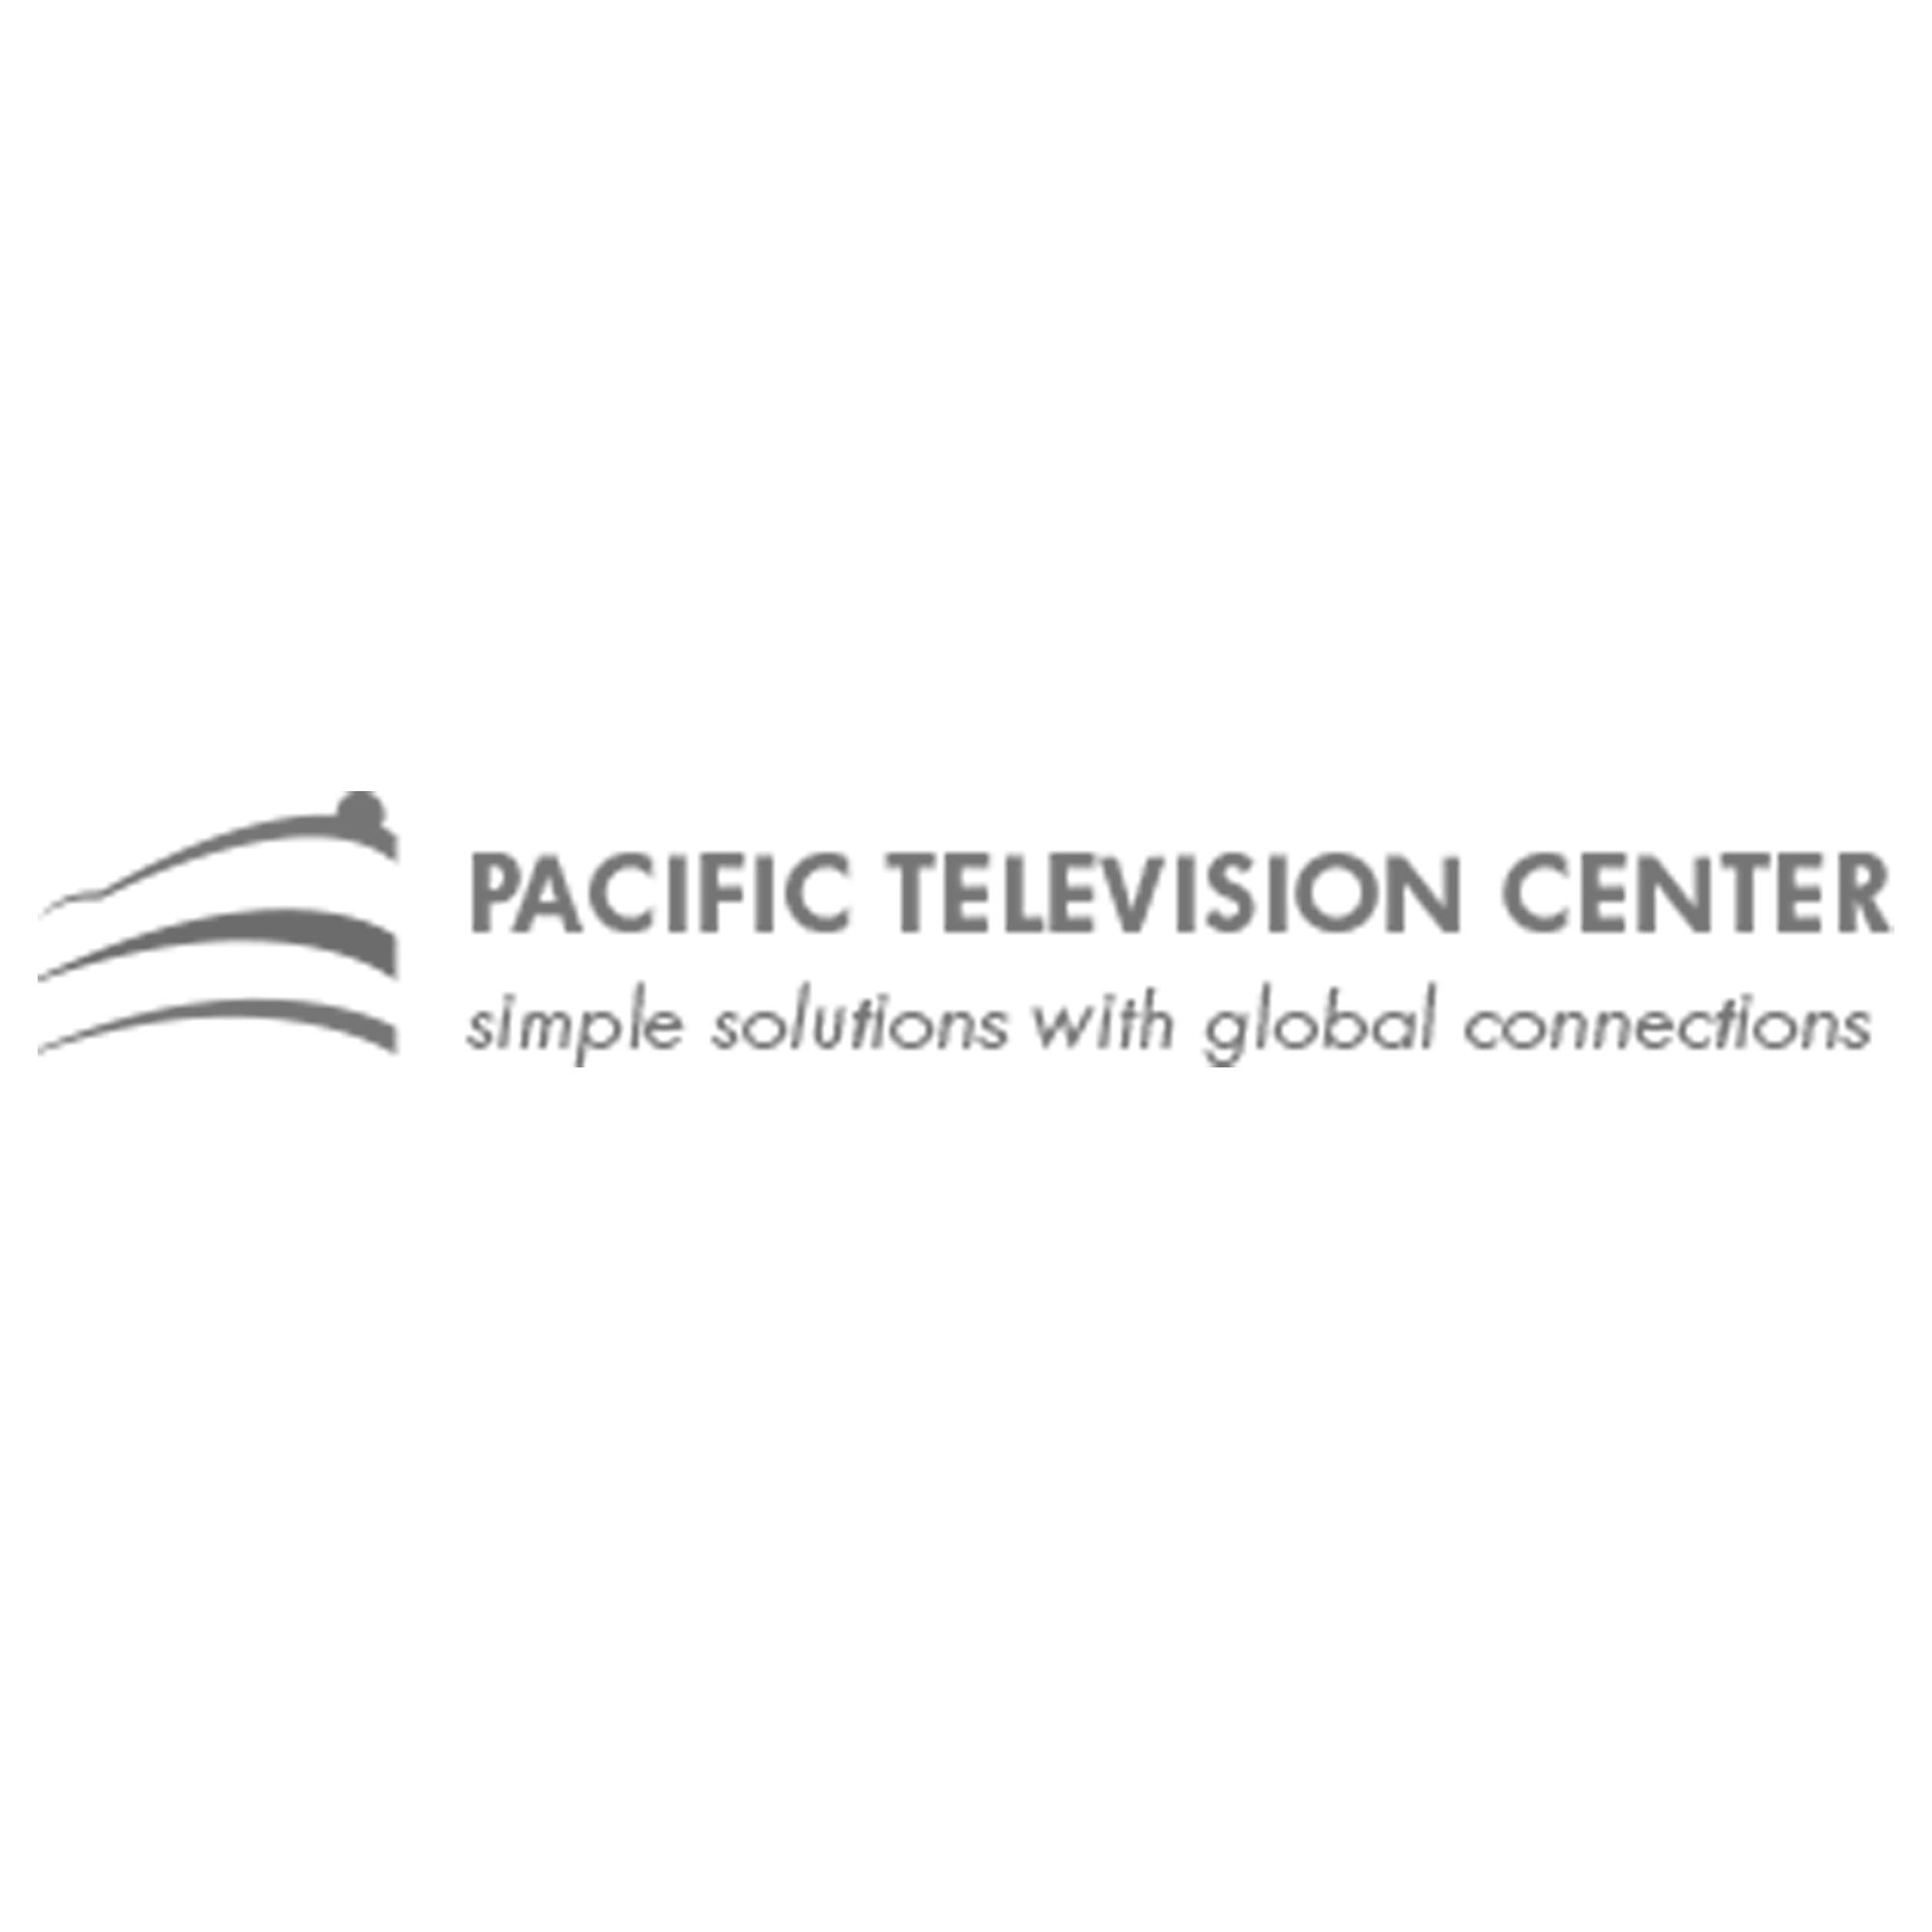 pacific logo black and white.png